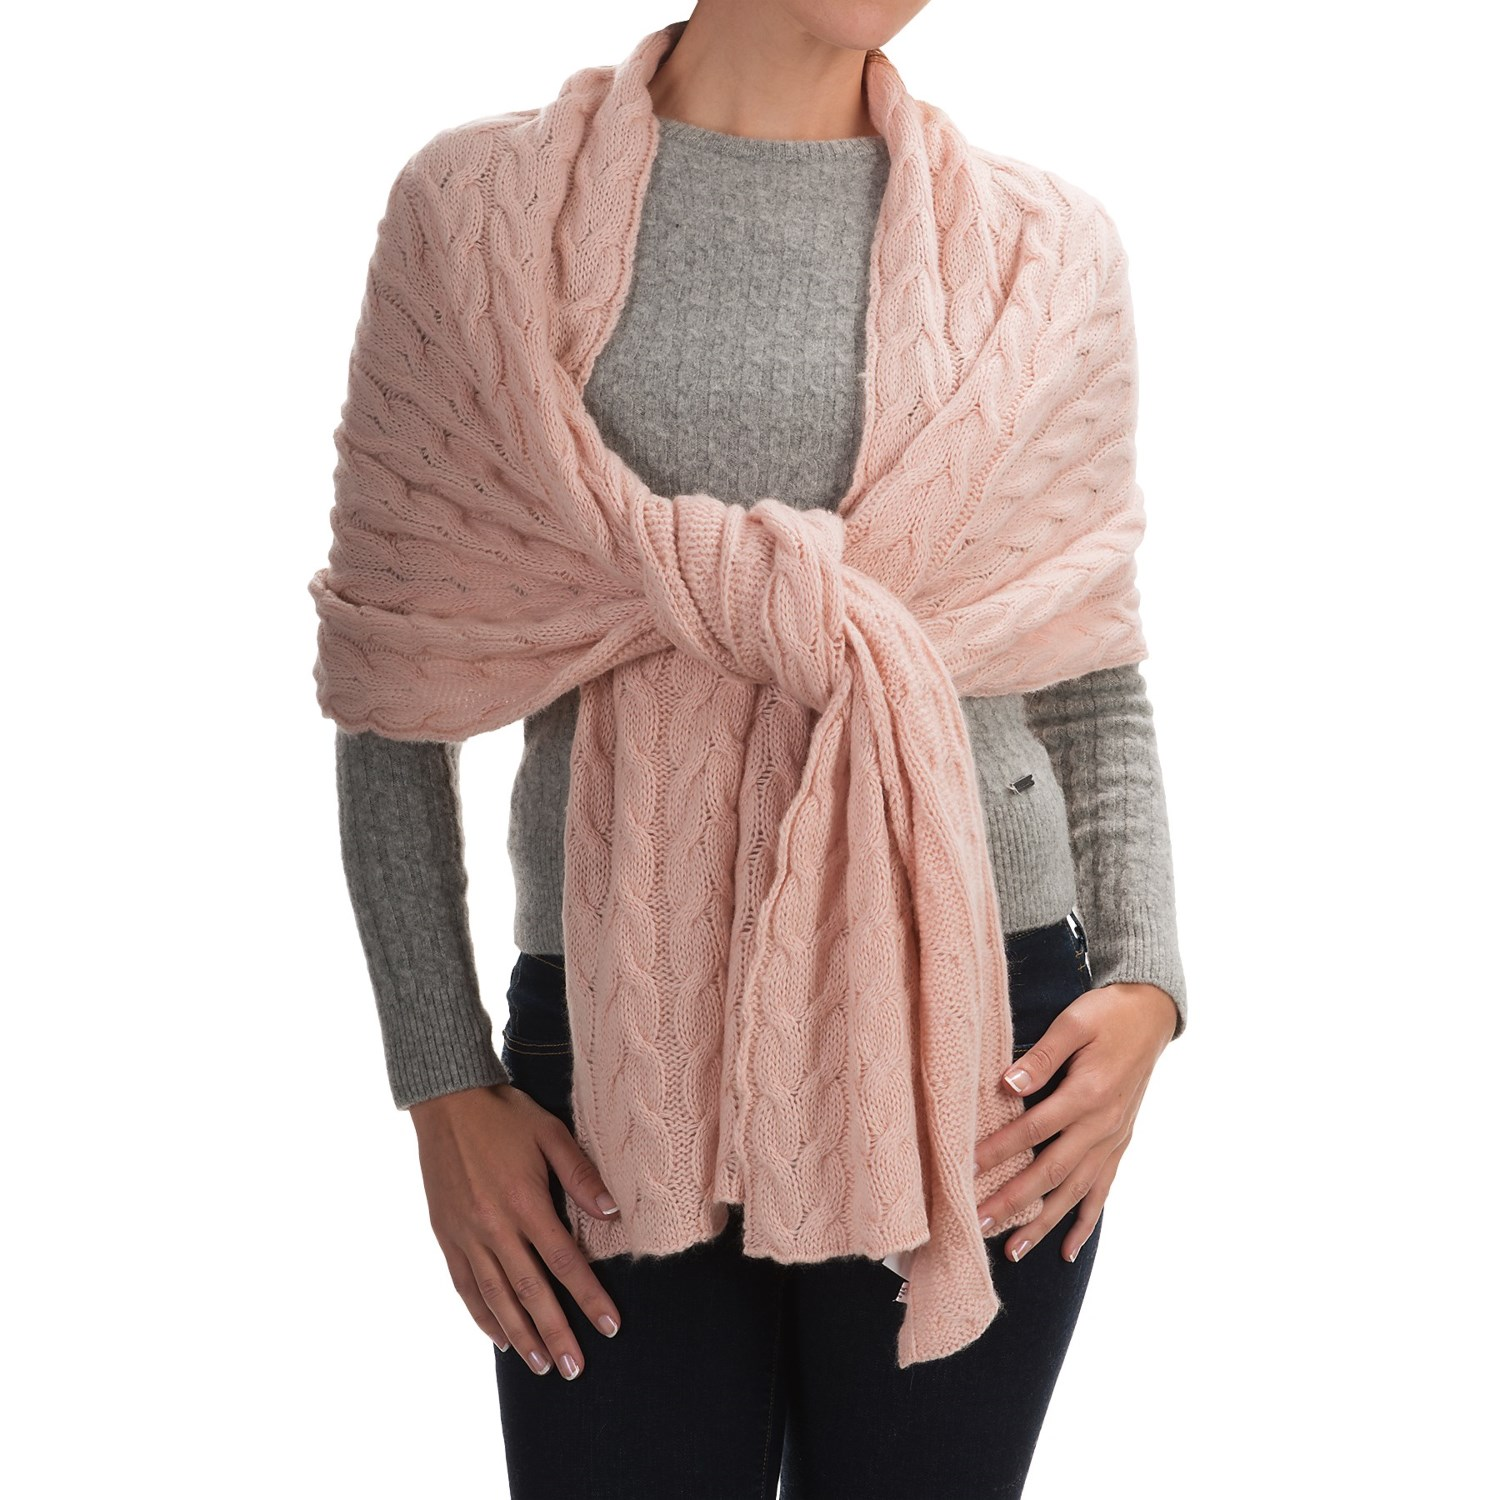 Portolano Cable-Knit Cashmere Wrap (For Women) - Save 70%